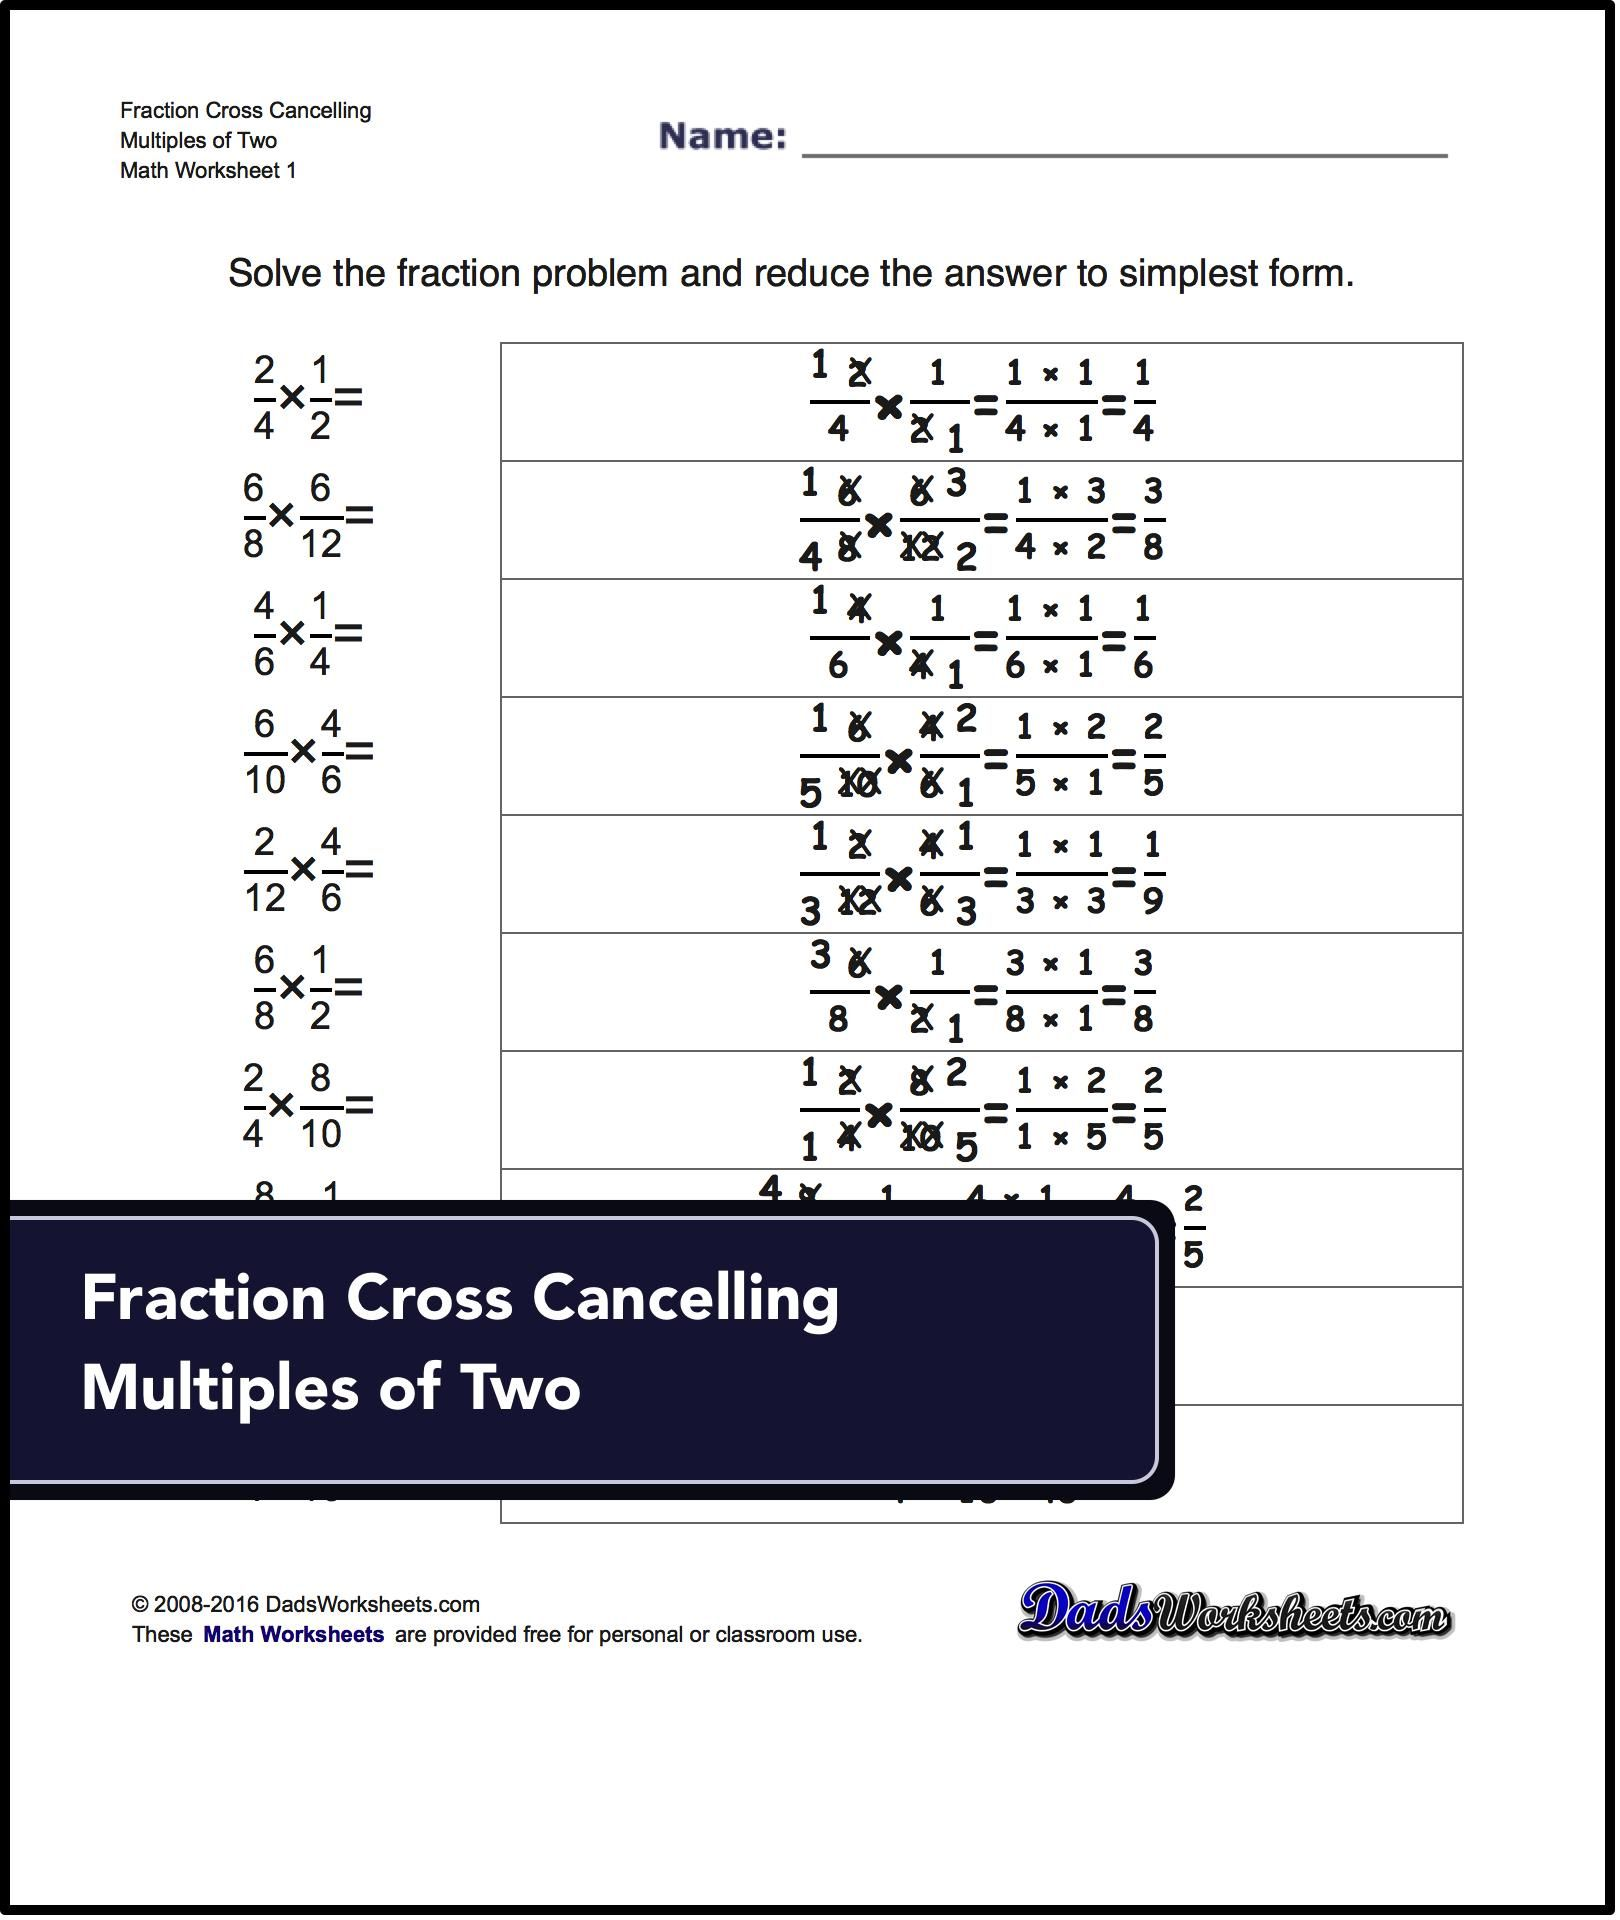 Multiplying Fractions Worksheets Fraction Multiplication With A  Multiplying Fractions Worksheets Fraction Multiplication With A Focus On  Cross Cancelling